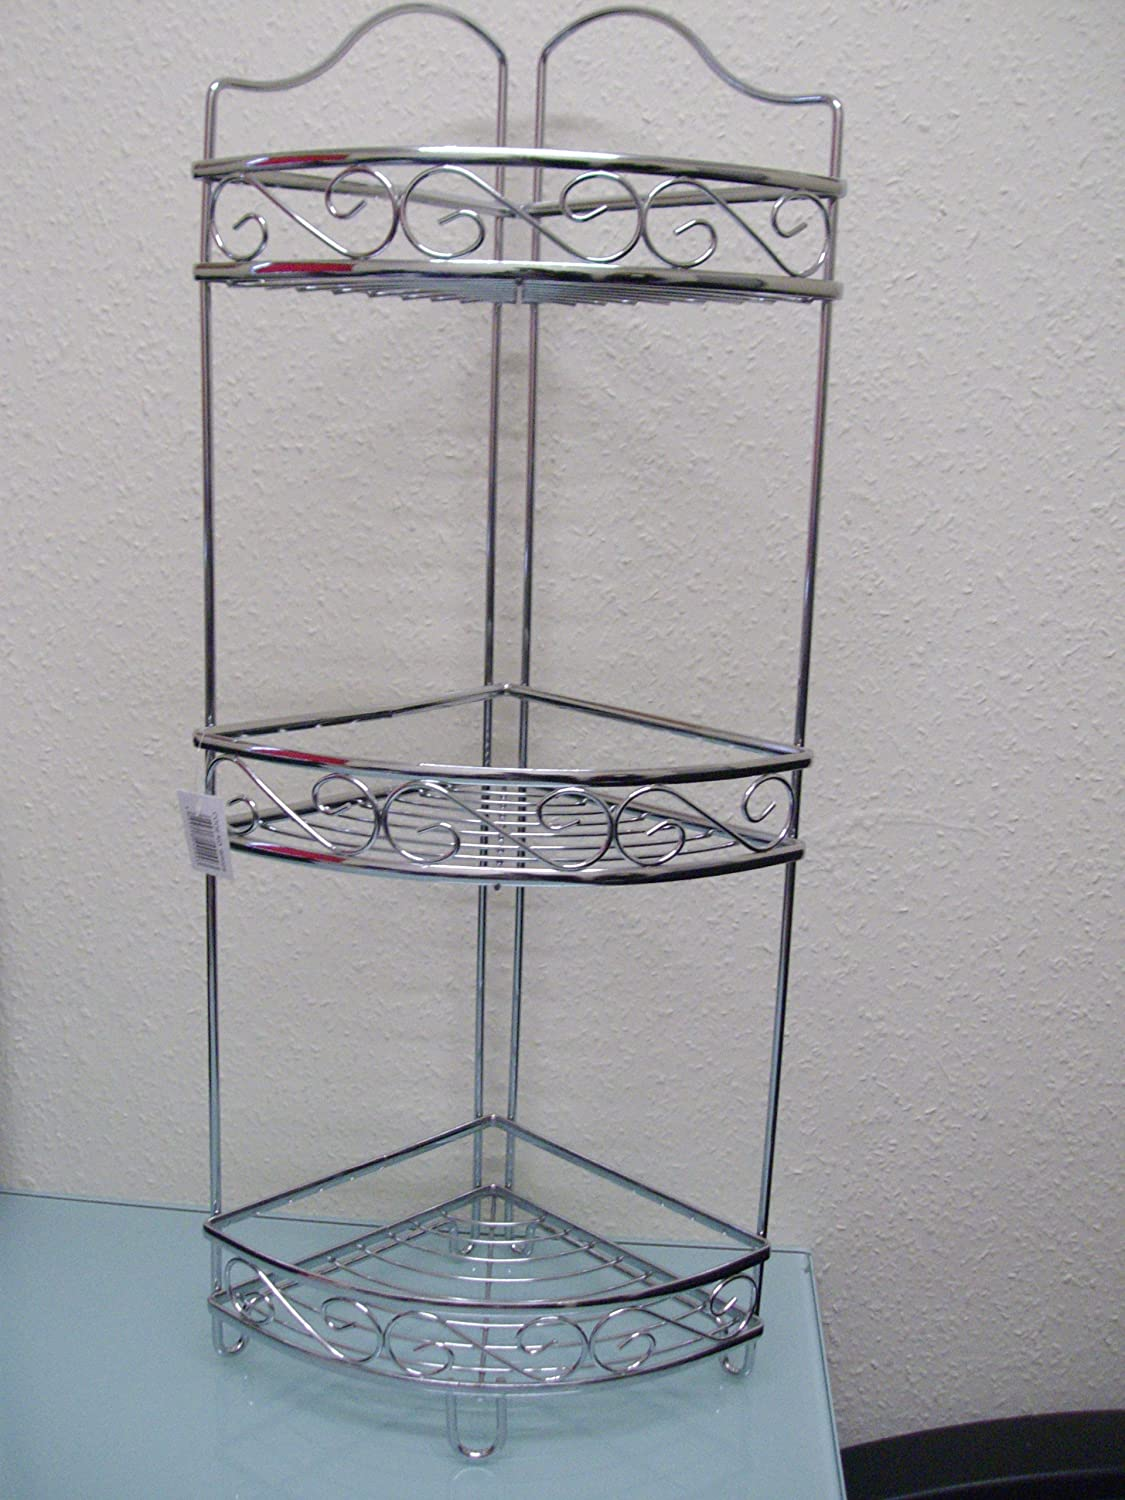 3 Tier Free Standing Corner Shelf Storage Caddy Organiser